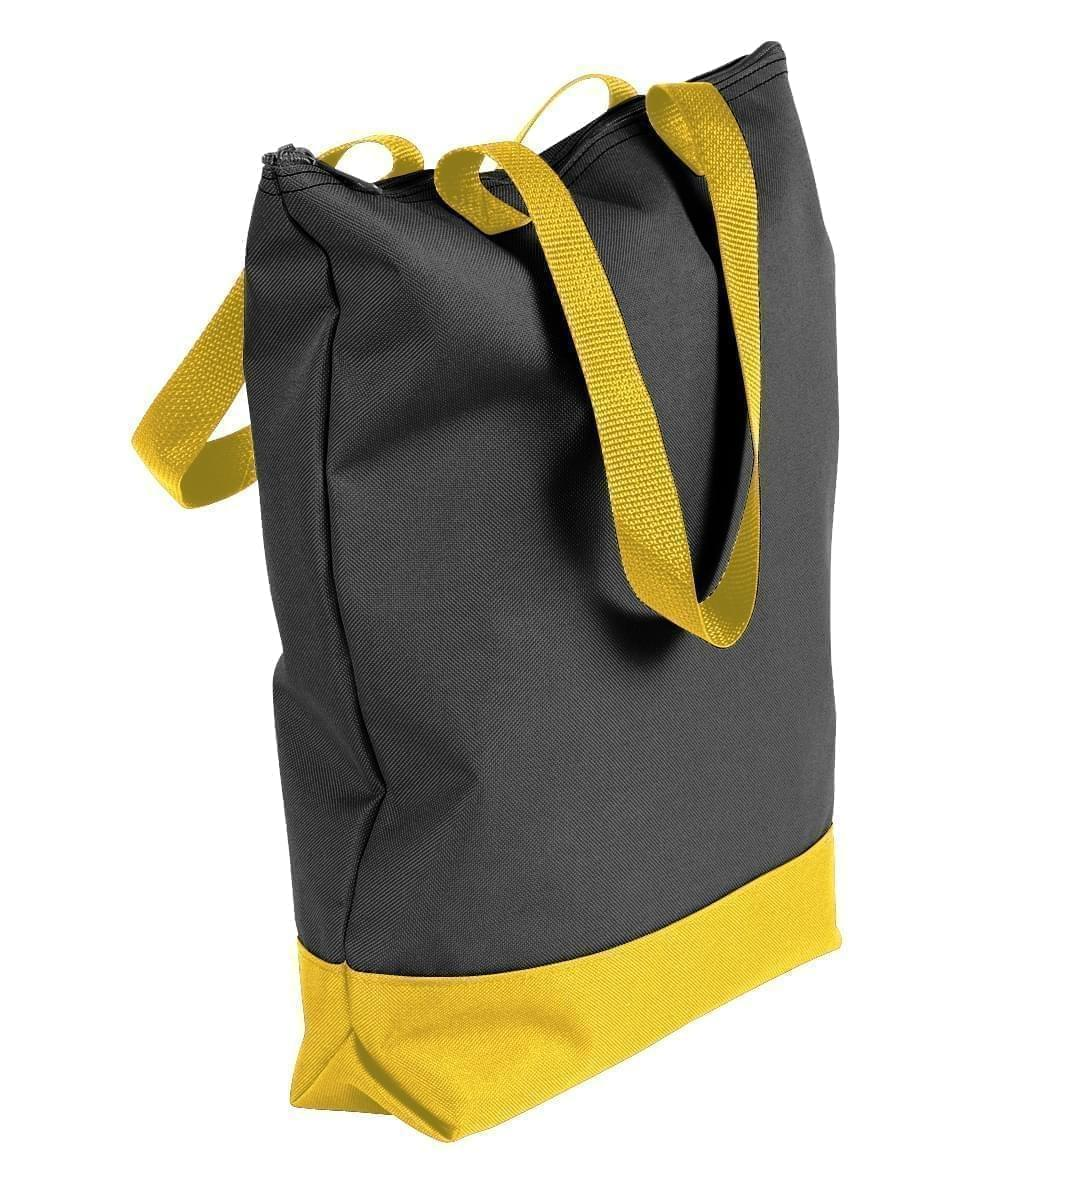 USA Made Canvas Portfolio Tote Bags, Black-Gold, 1AAMX1UAH5